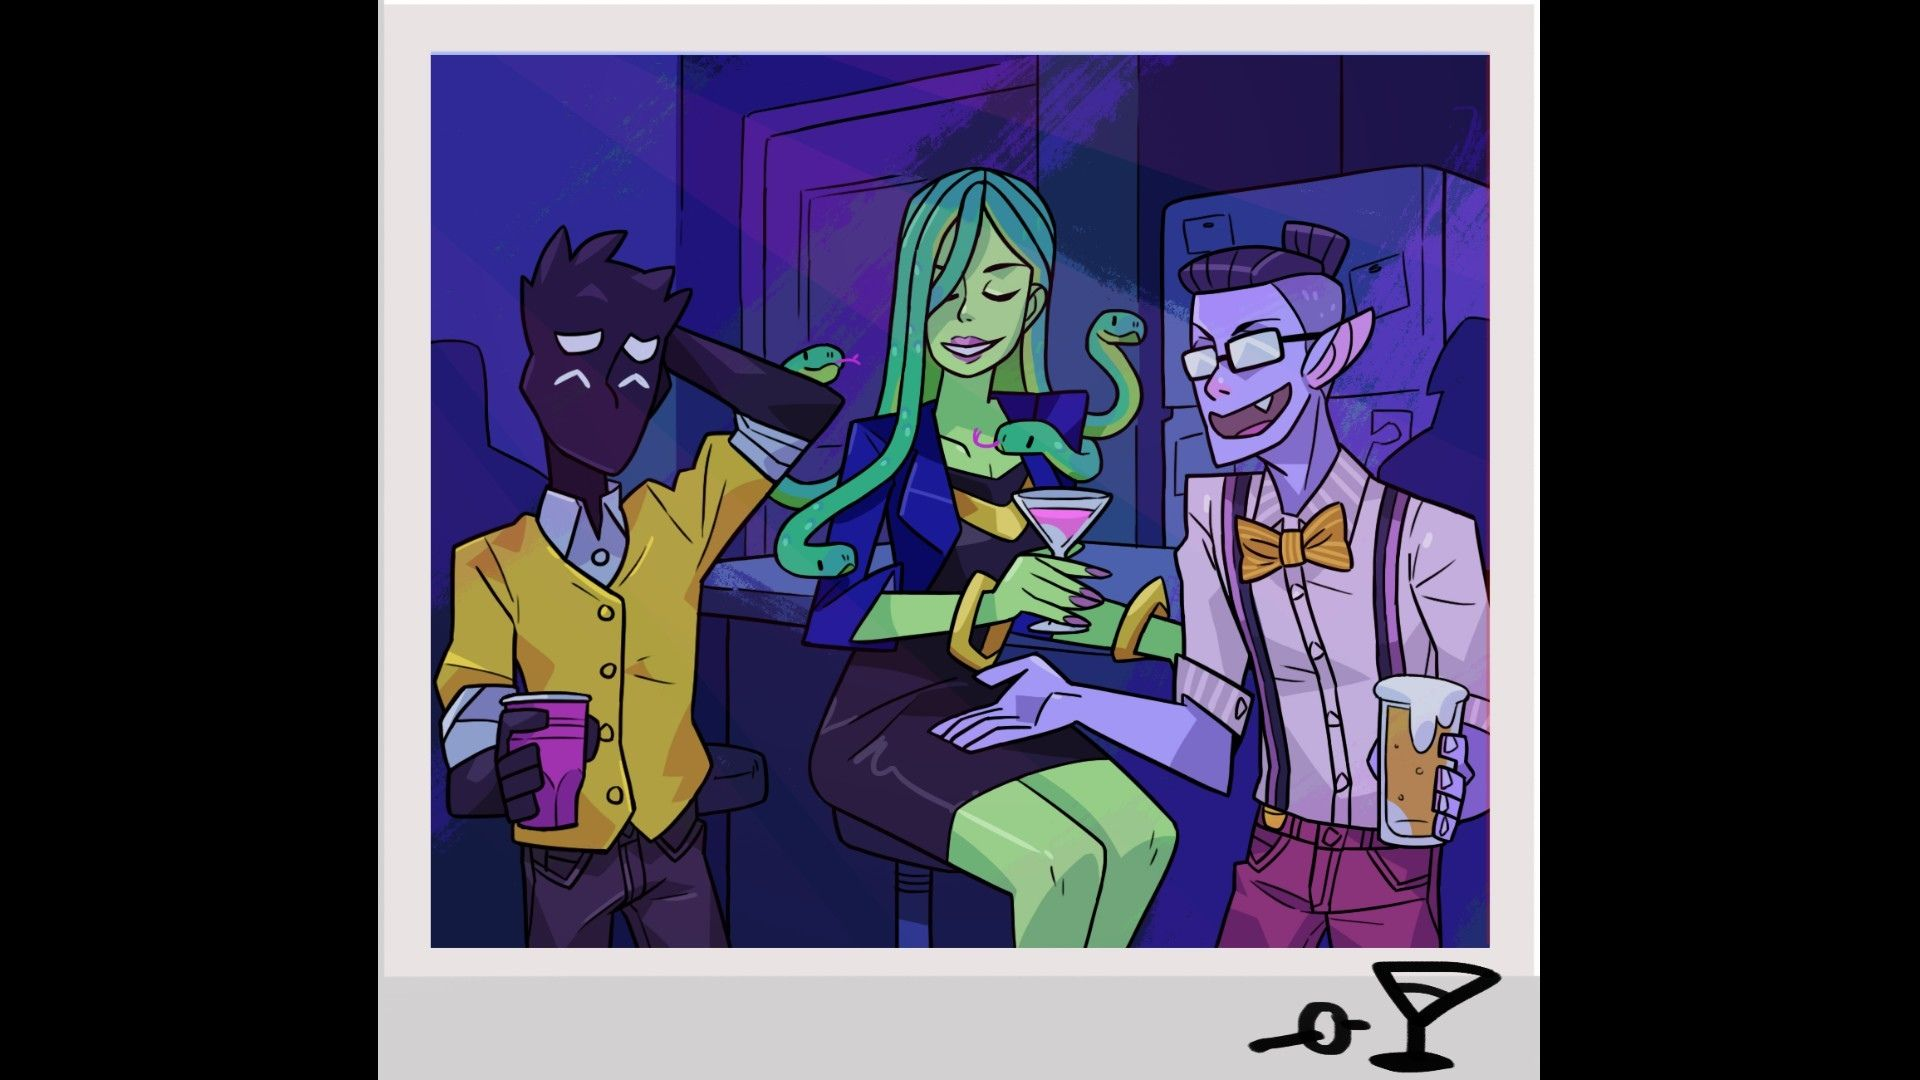 Pin by RoseGold on Monster Prom Monster prom, Character